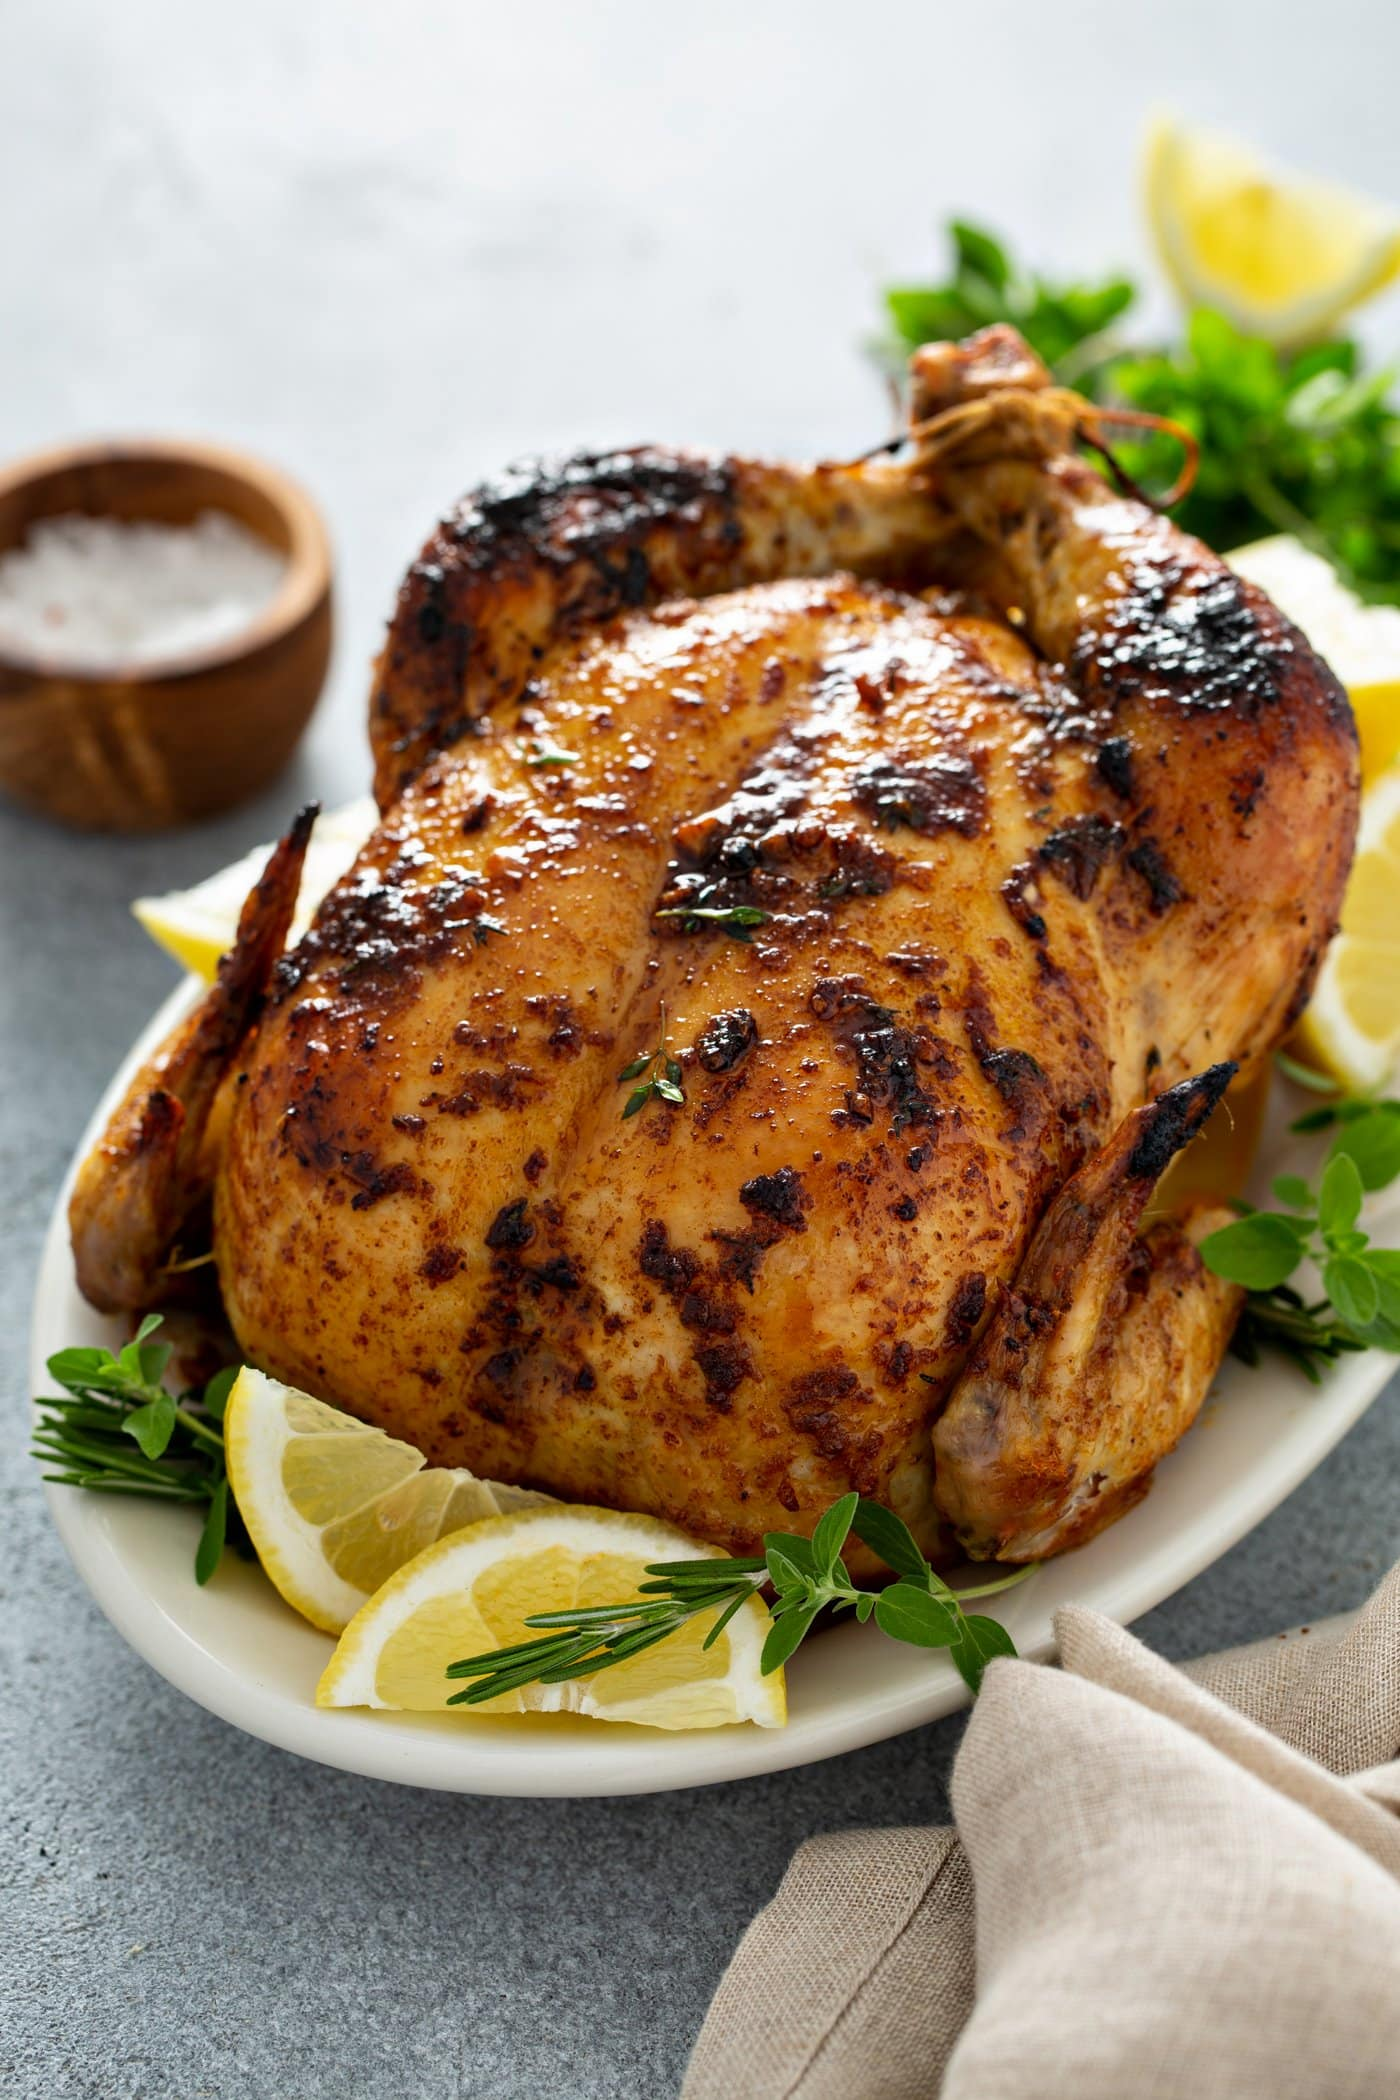 A whole roasted chicken. The chicken is on a platter surrounded by lemon wedges and fresh thyme. A wooden bowl of salt, a linen napkin and a few sprigs of thyme are on the table next to the chicken.